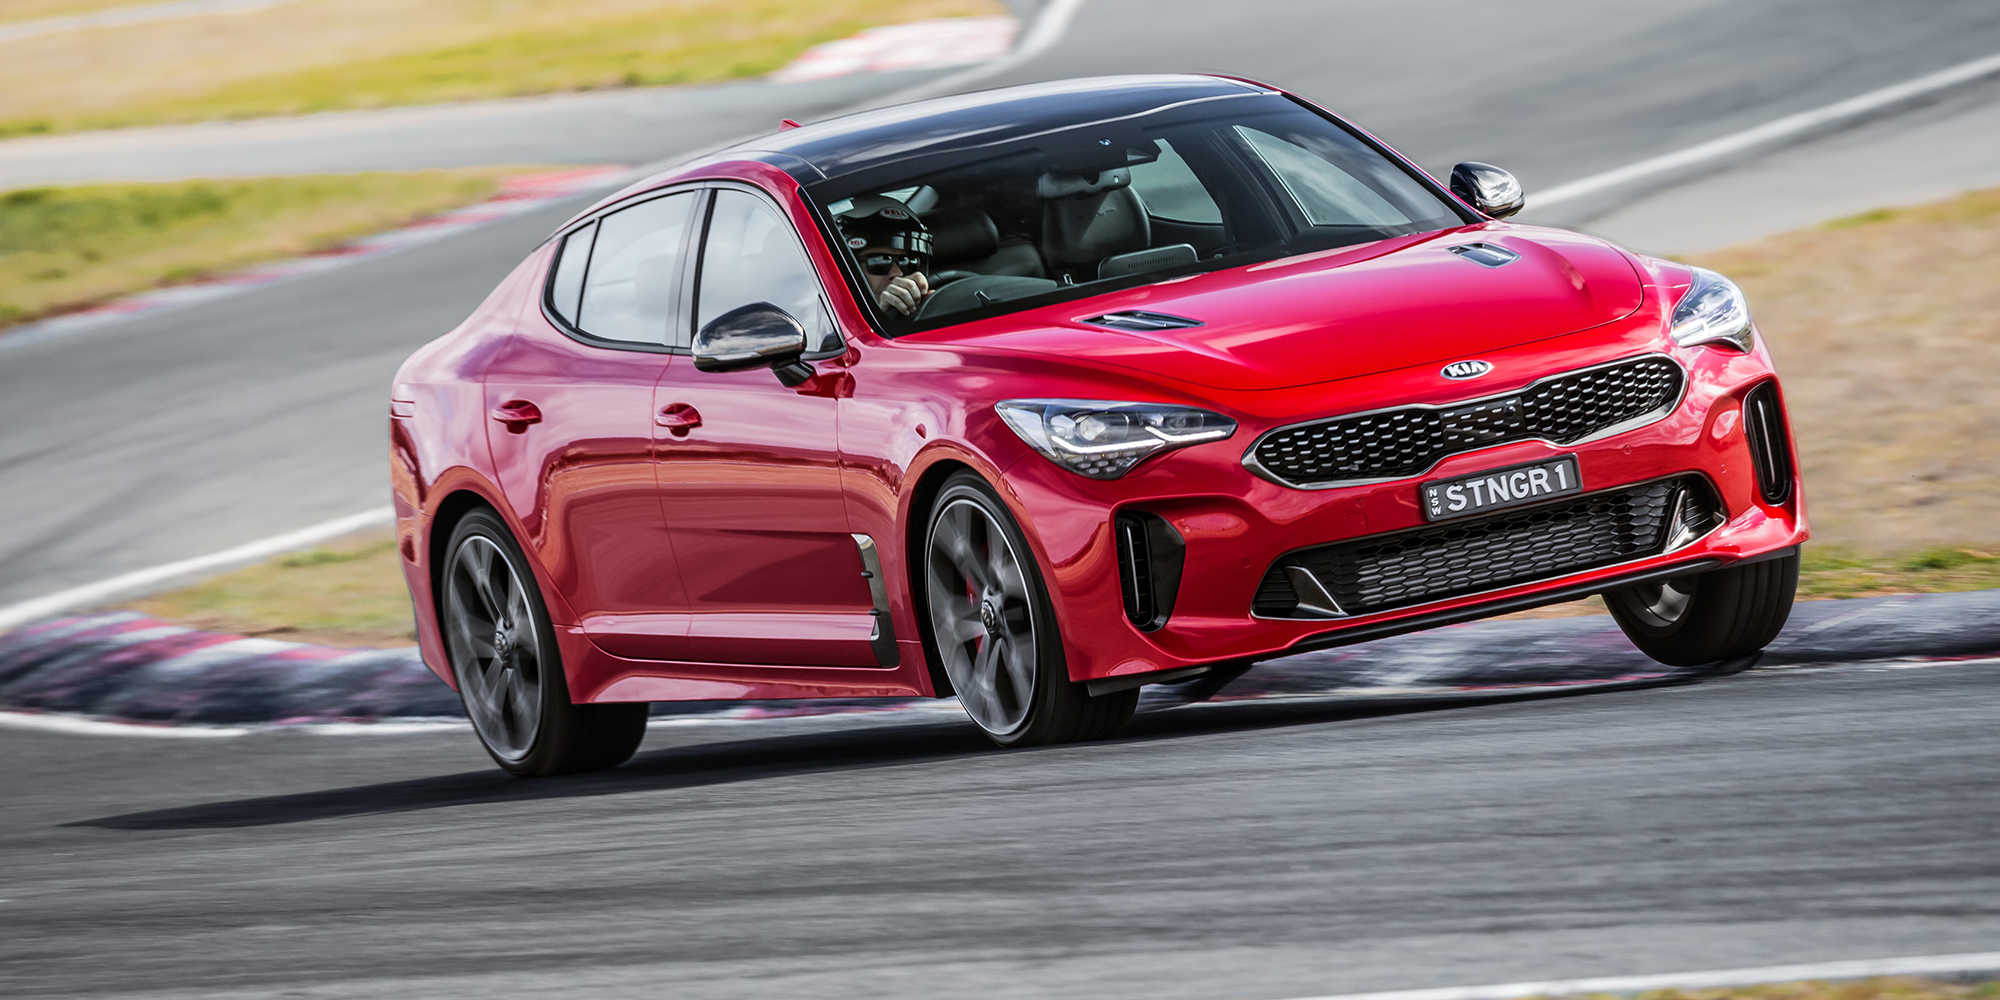 2018 kia stinger pricing and specs - update